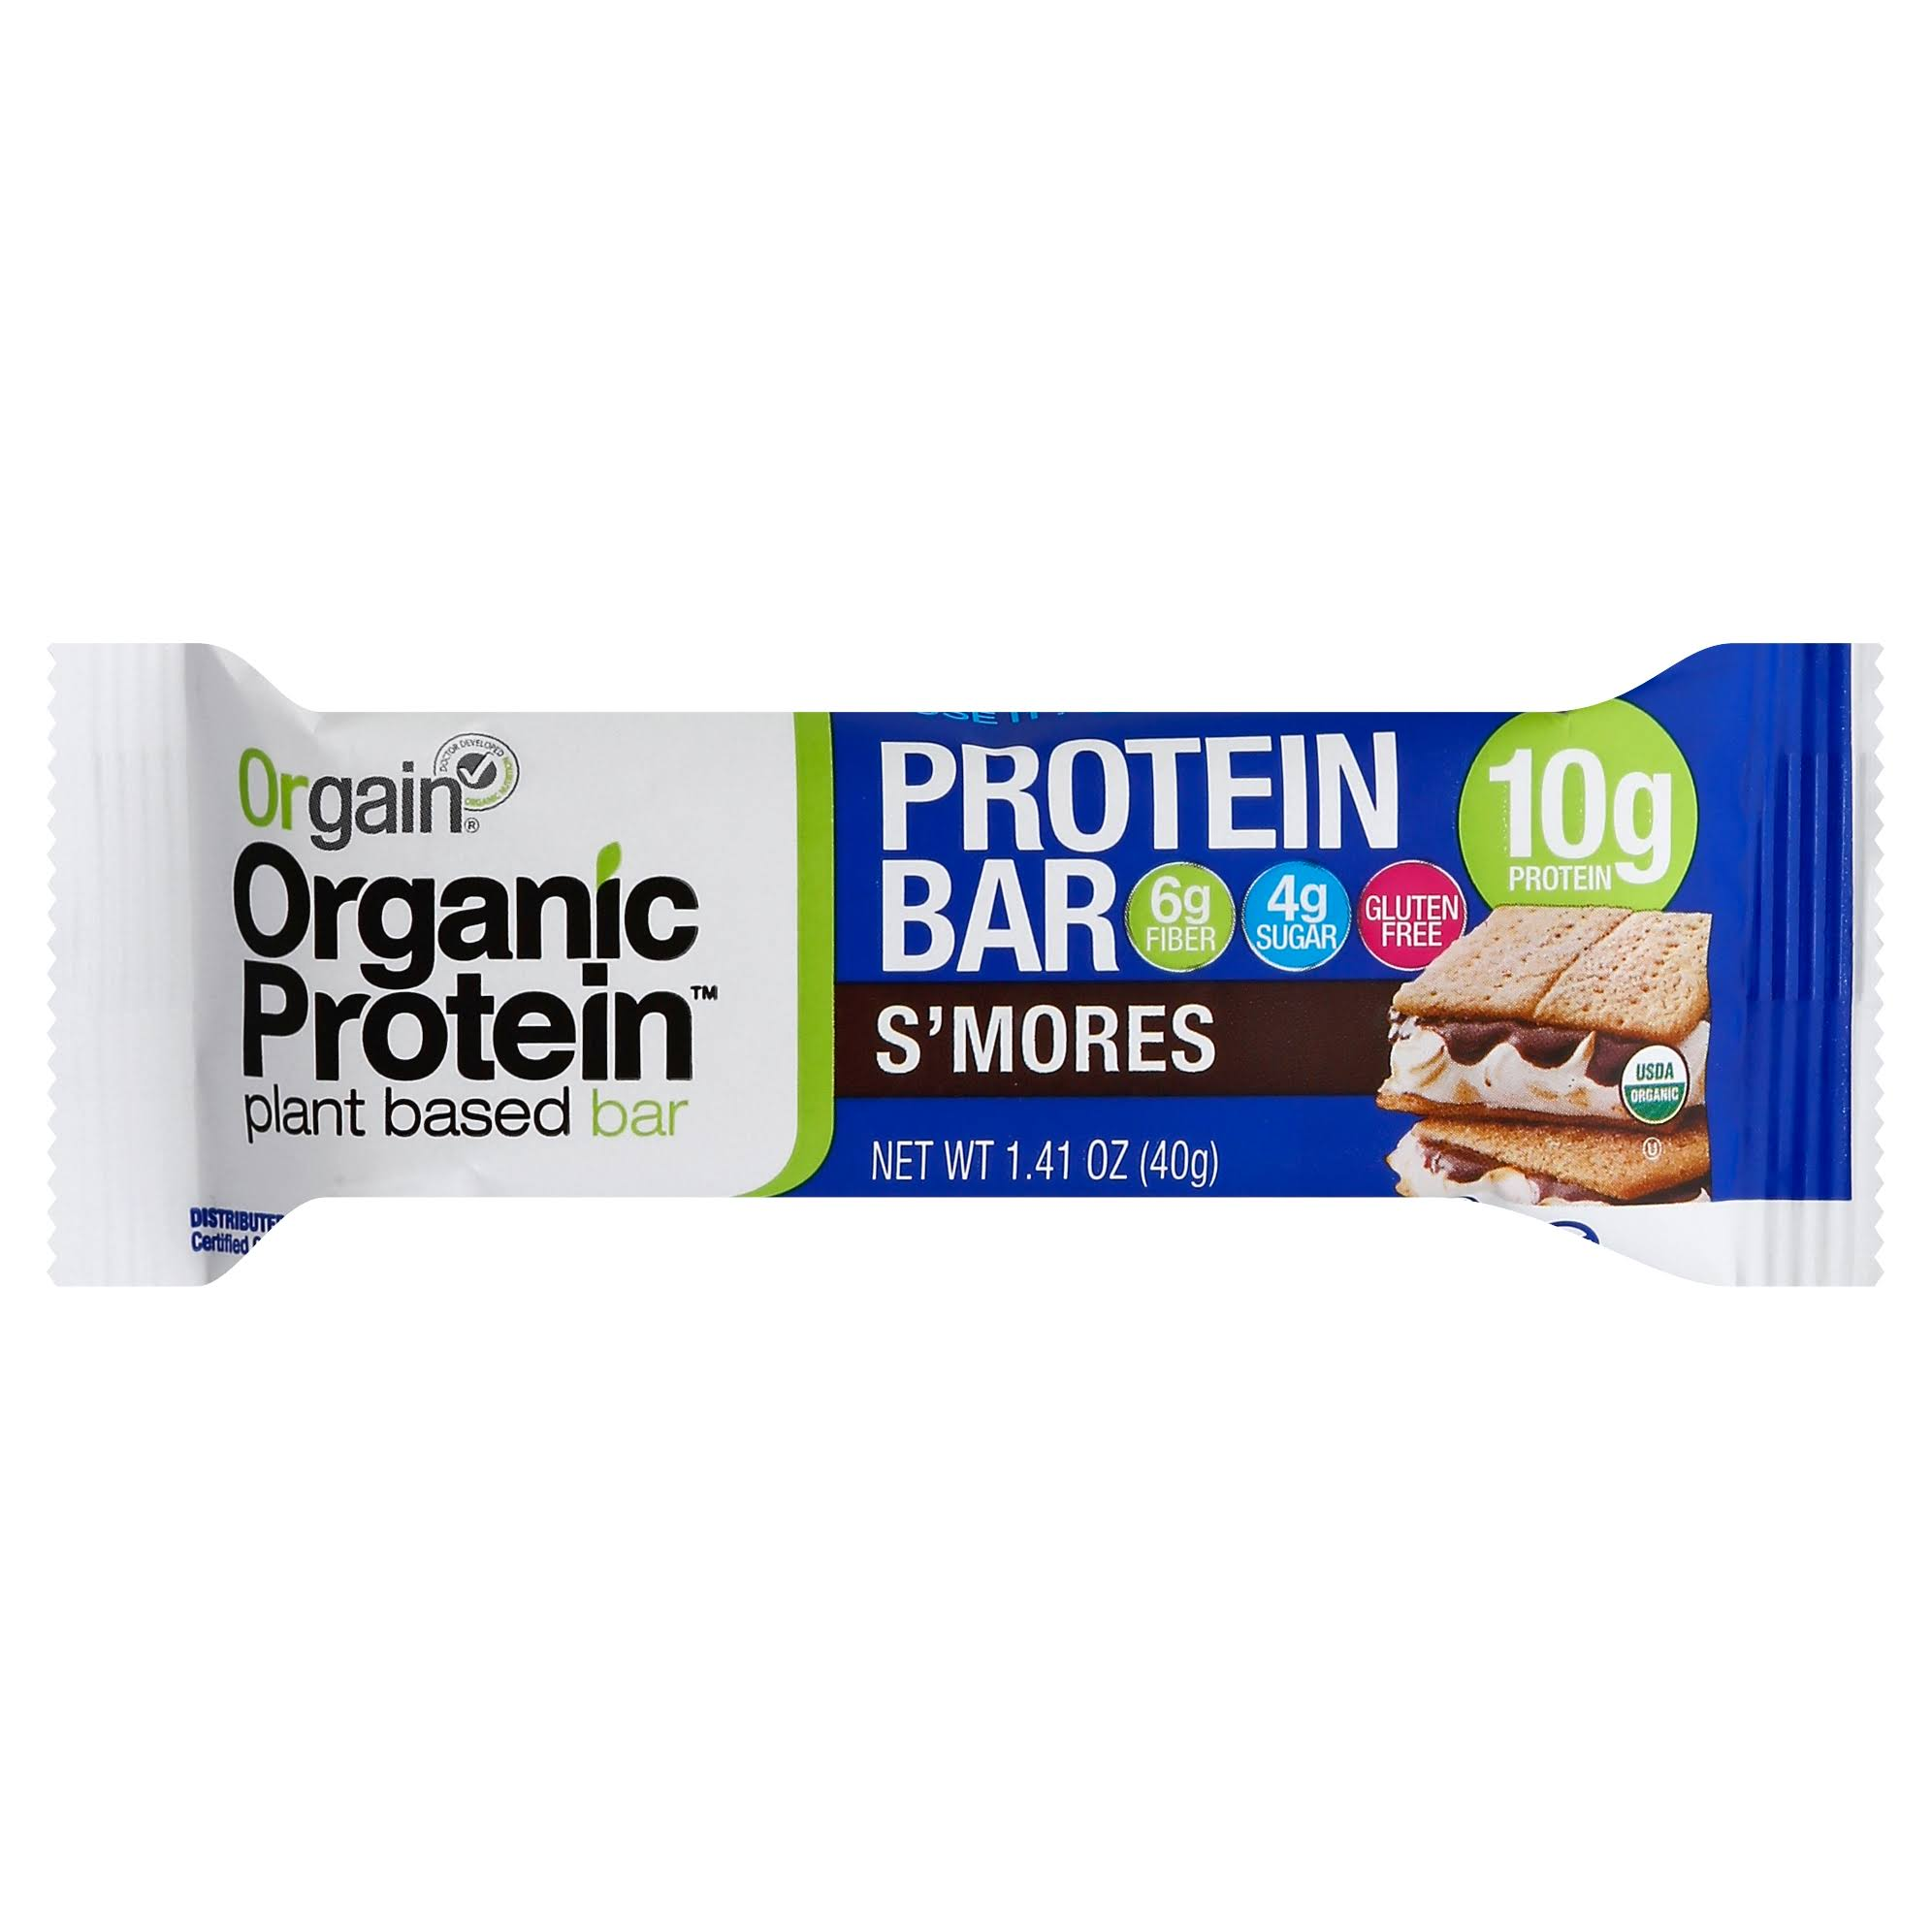 Orgain Organic Protein Plant Based Bar - 40g, S'mores